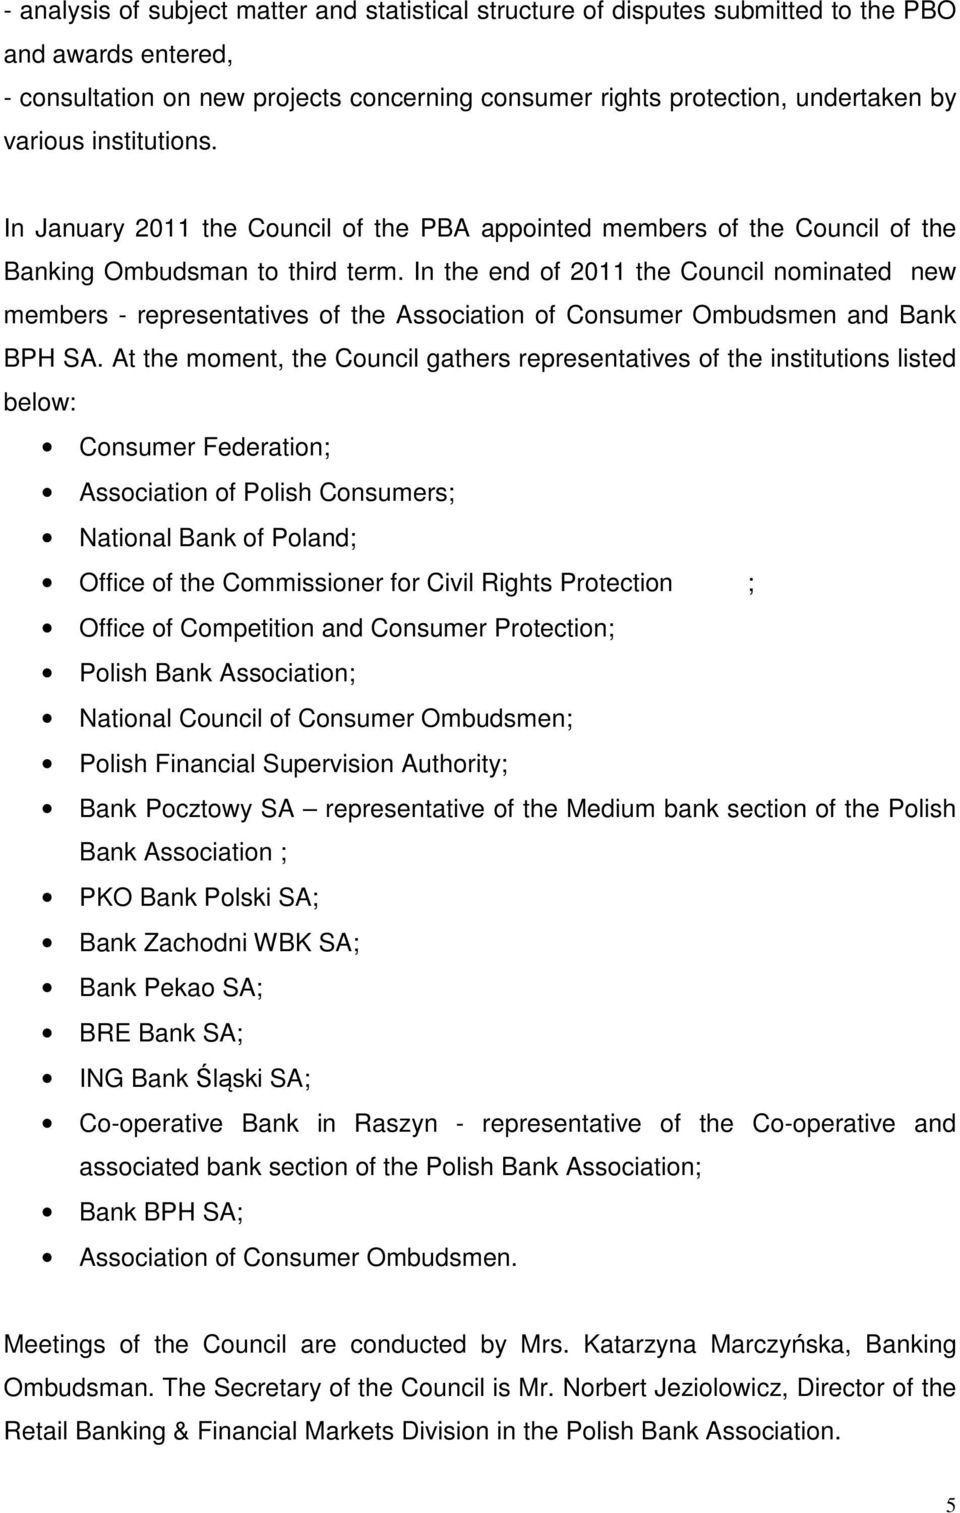 In the end of 2011 the Council nominated new members - representatives of the Association of Consumer Ombudsmen and Bank BPH SA.